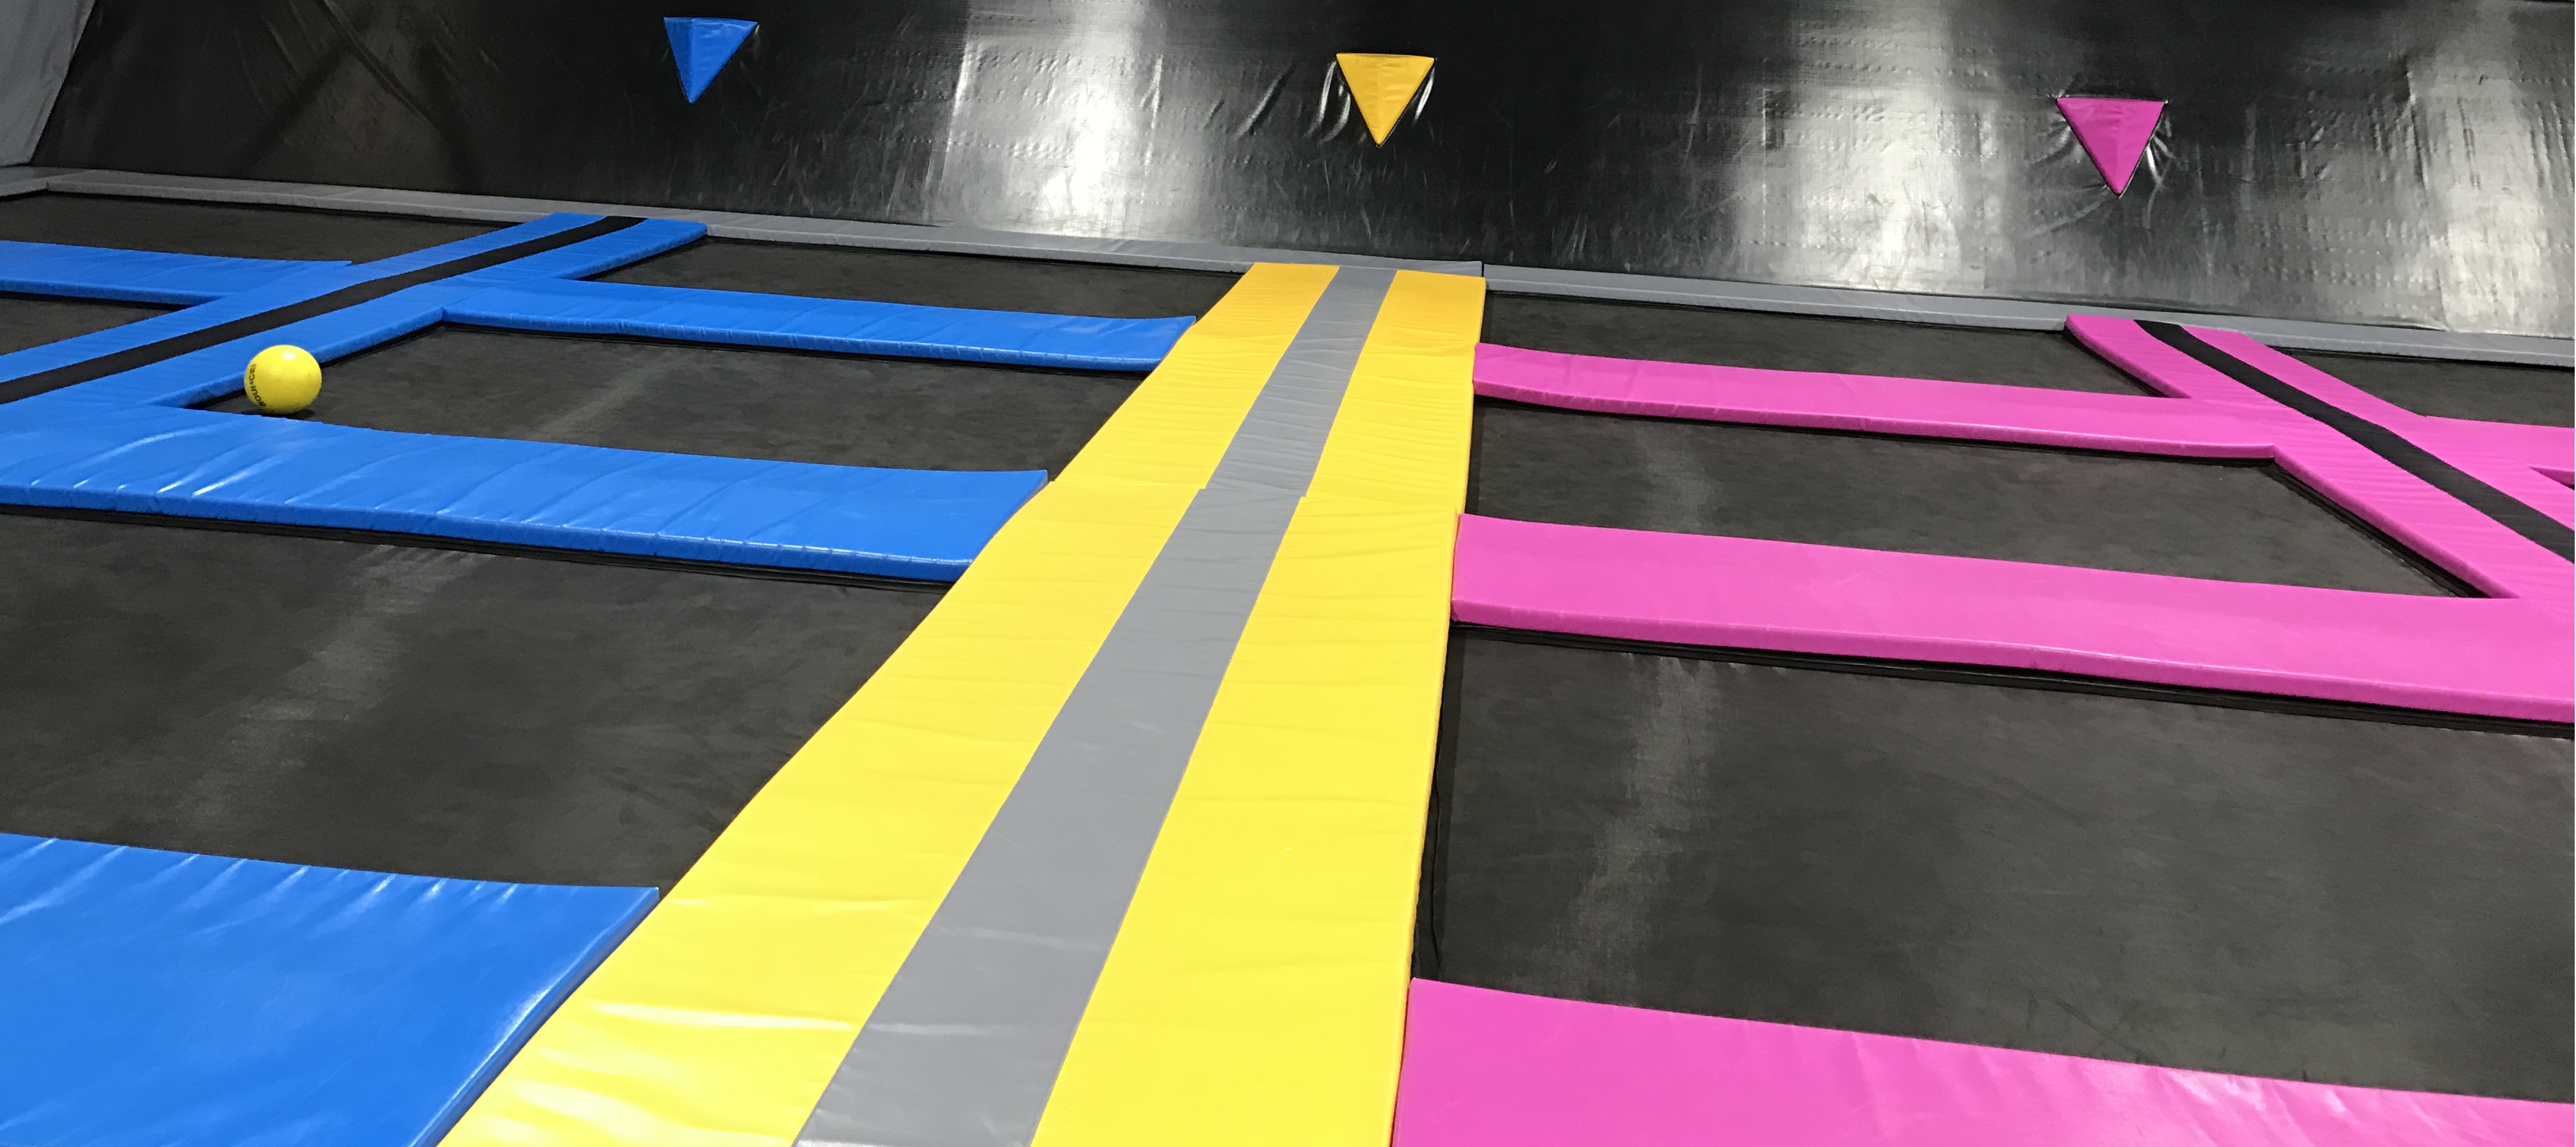 What to wear in trampoline park?